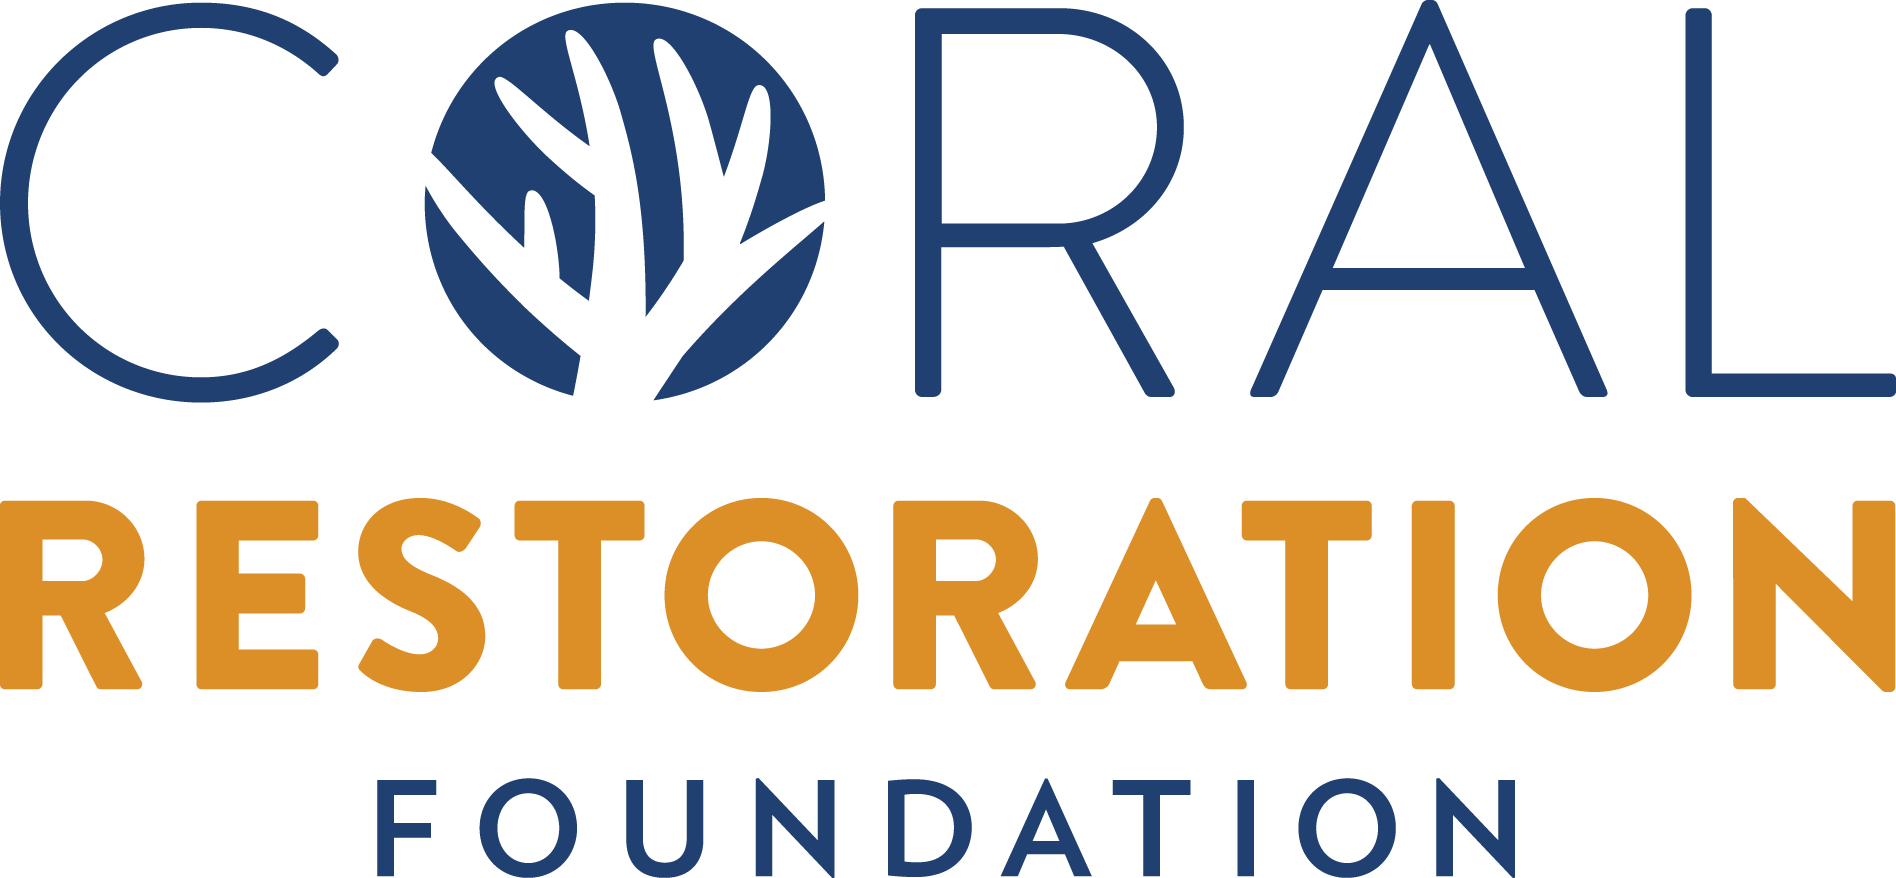 The Coral Restoration Foundation Is A Non Profit Ocean Conservation Organization Working To Restore Reefs Educ Foundation Logo Work Organization Teaching Kids